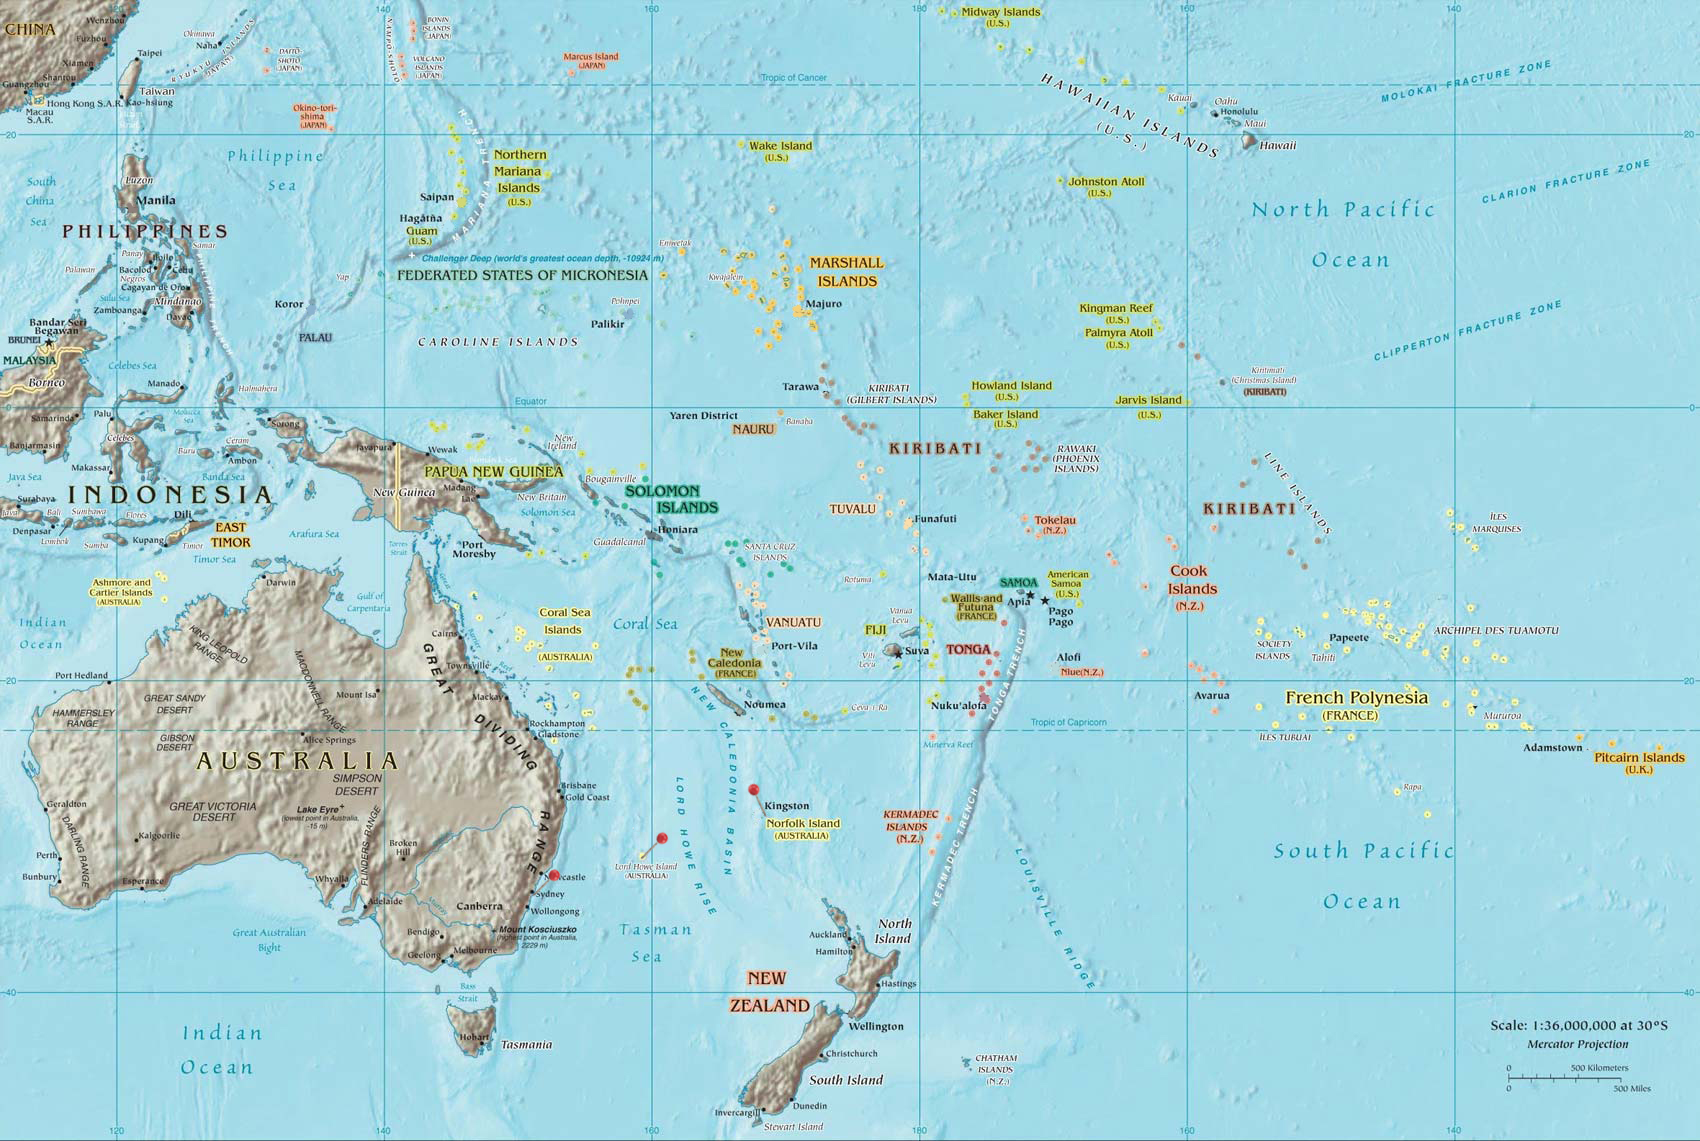 Pacific Ocean Topographic Map.File South Pacific Map Jpg Wikipedia